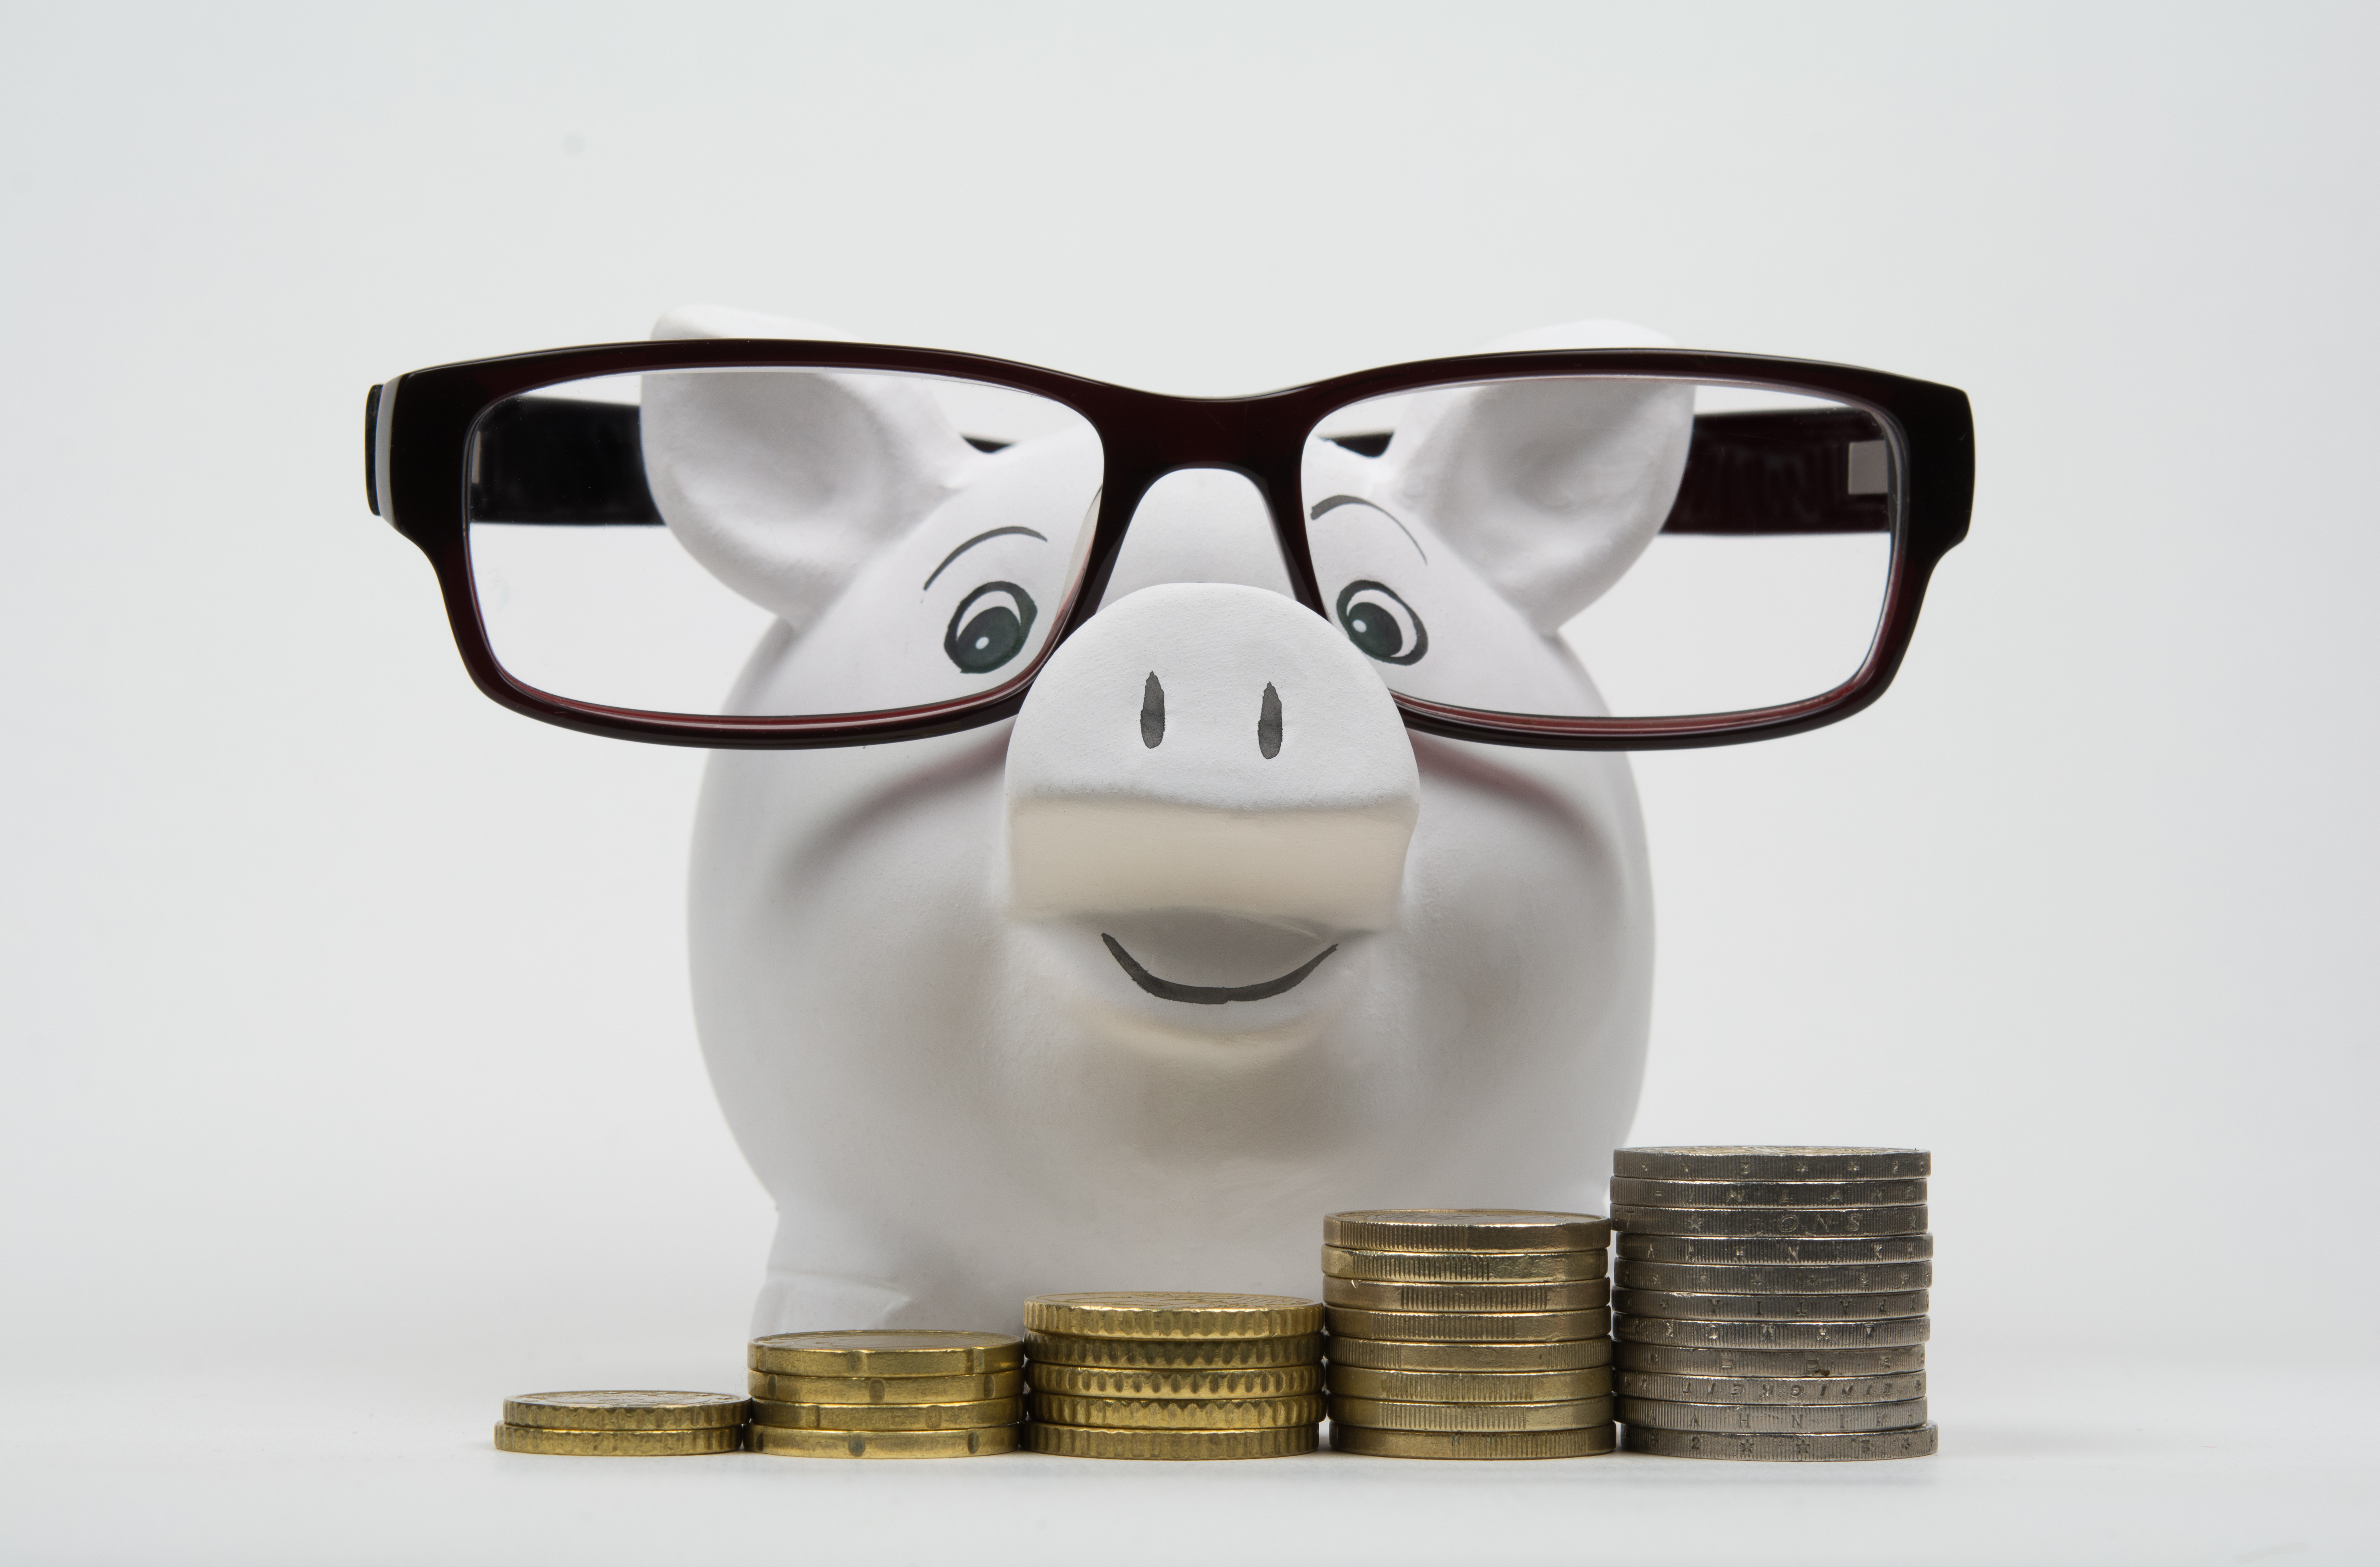 It's official: science says more money won't make you happier